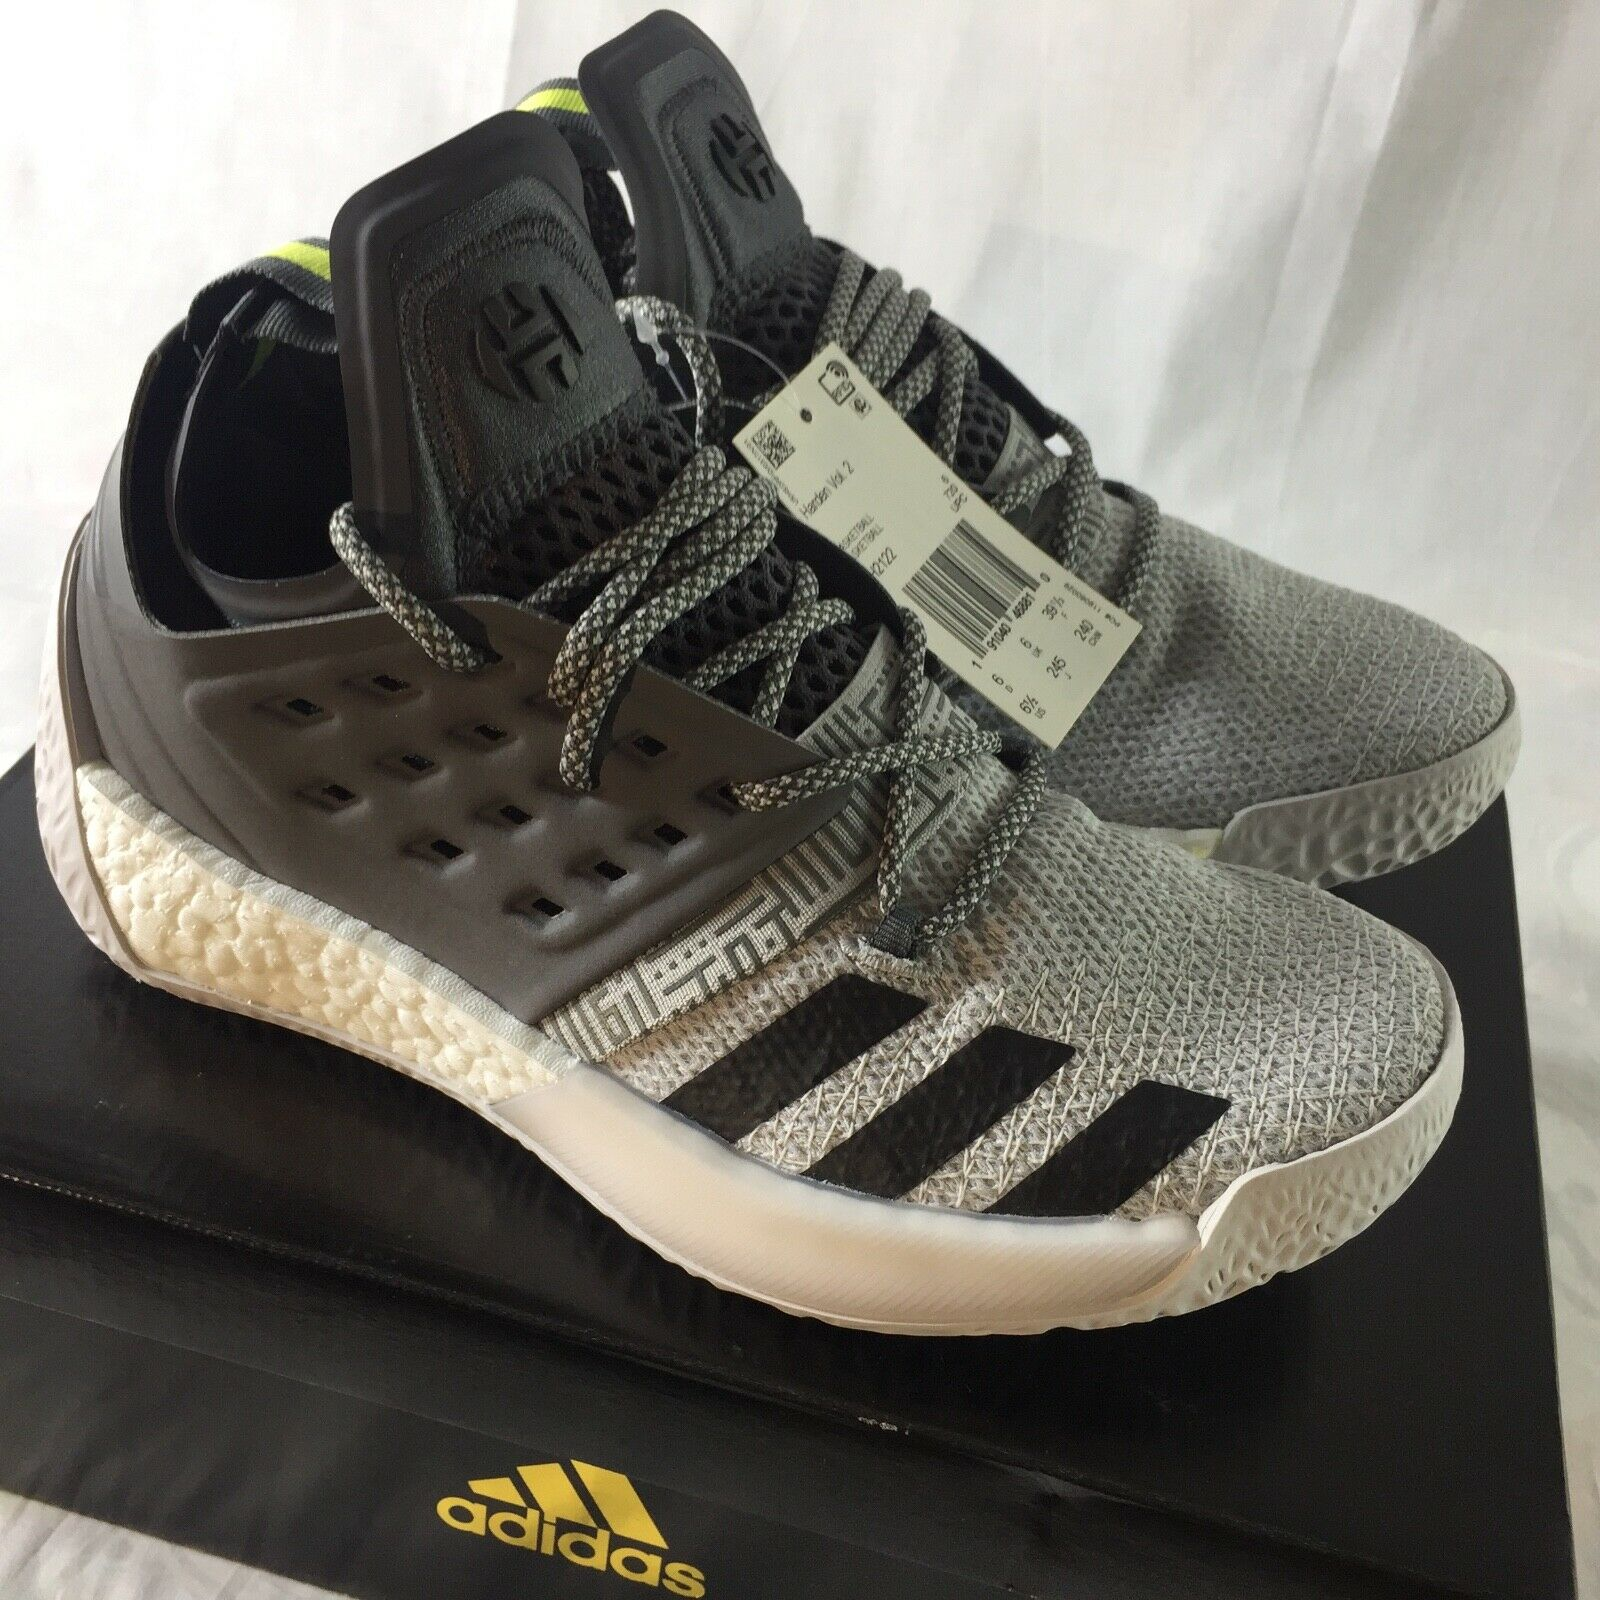 Adidas Adidas Adidas Harden Vol. 2 Men's Size 6.5 Boost Basketball shoes Sneakers NEW AH2122 6fe666